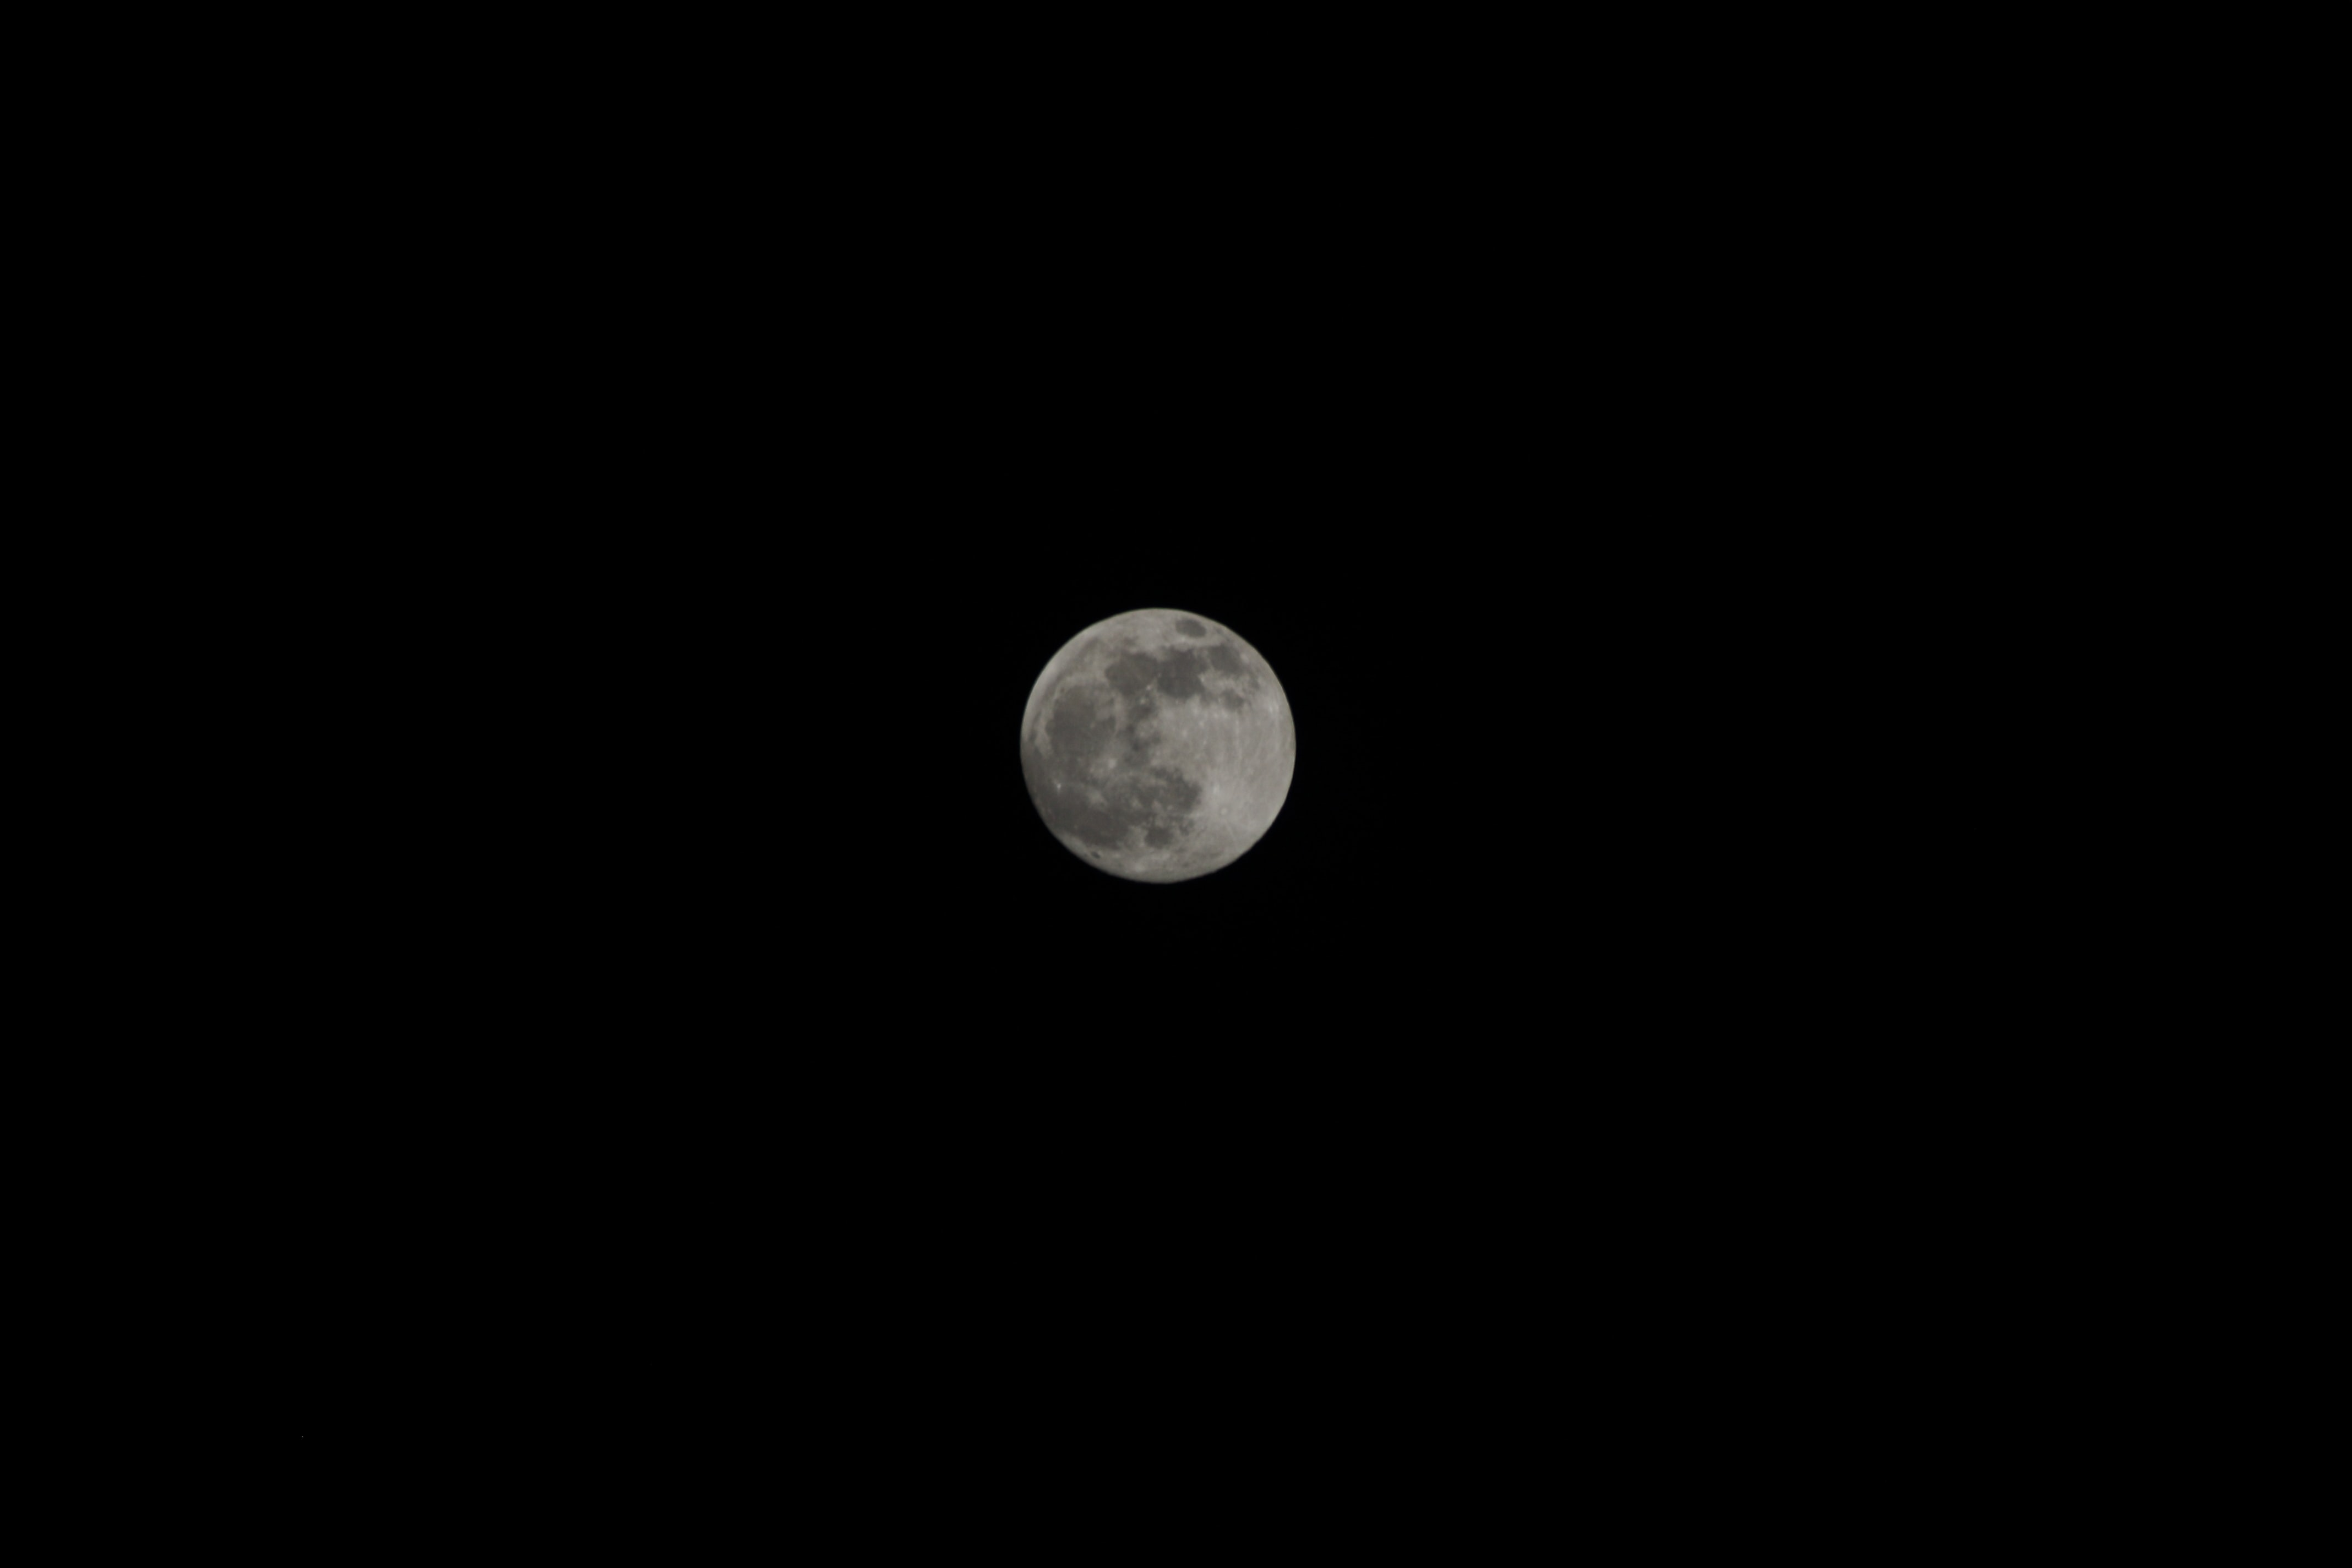 Full moon with visible dark spots against a black night sky in Caracas